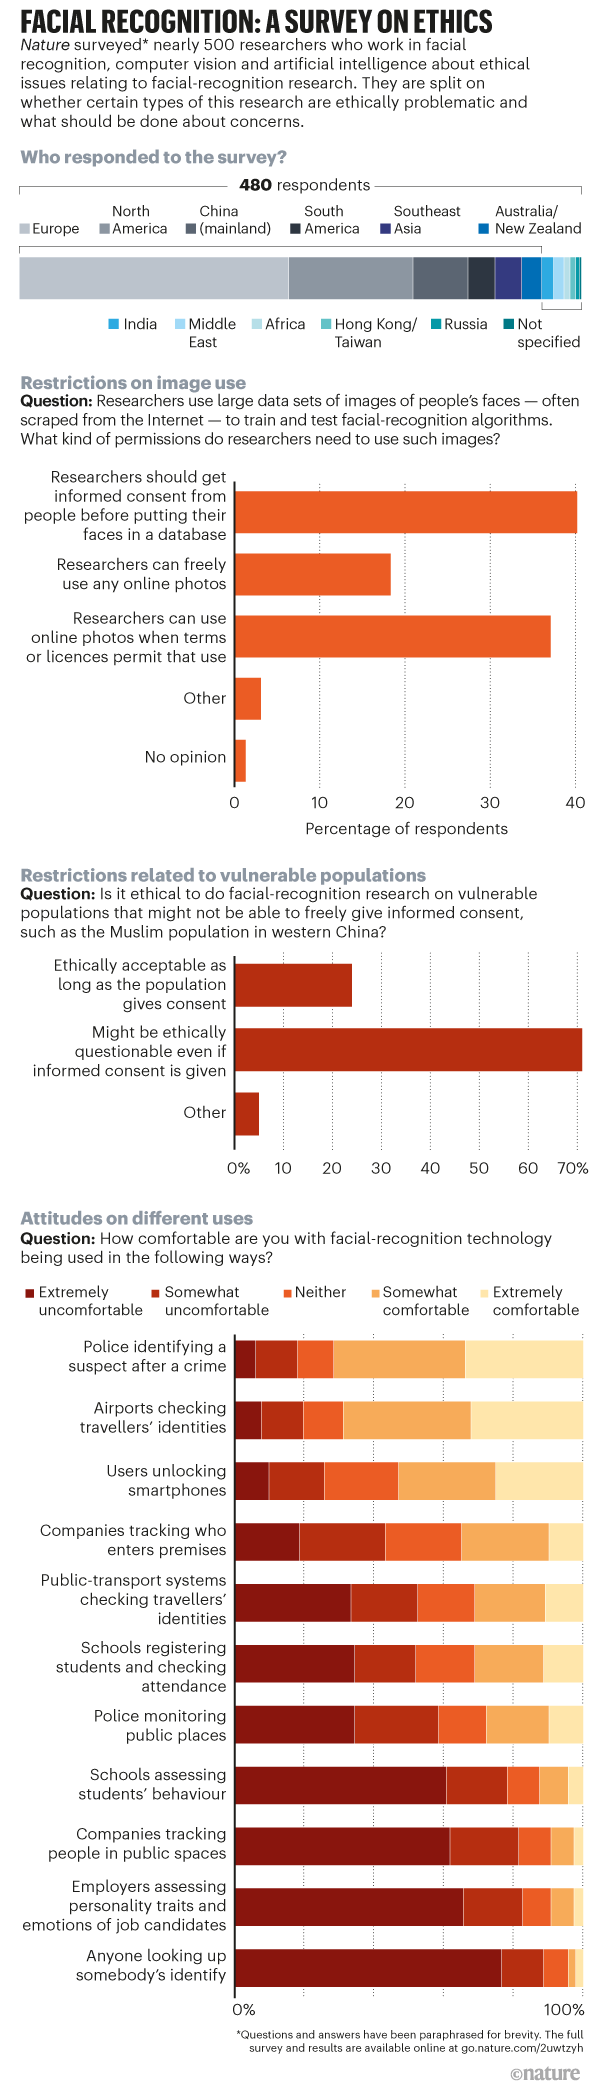 Graphic showing selected results from a Nature survey on the ethics of the use of facial-recognition technology.